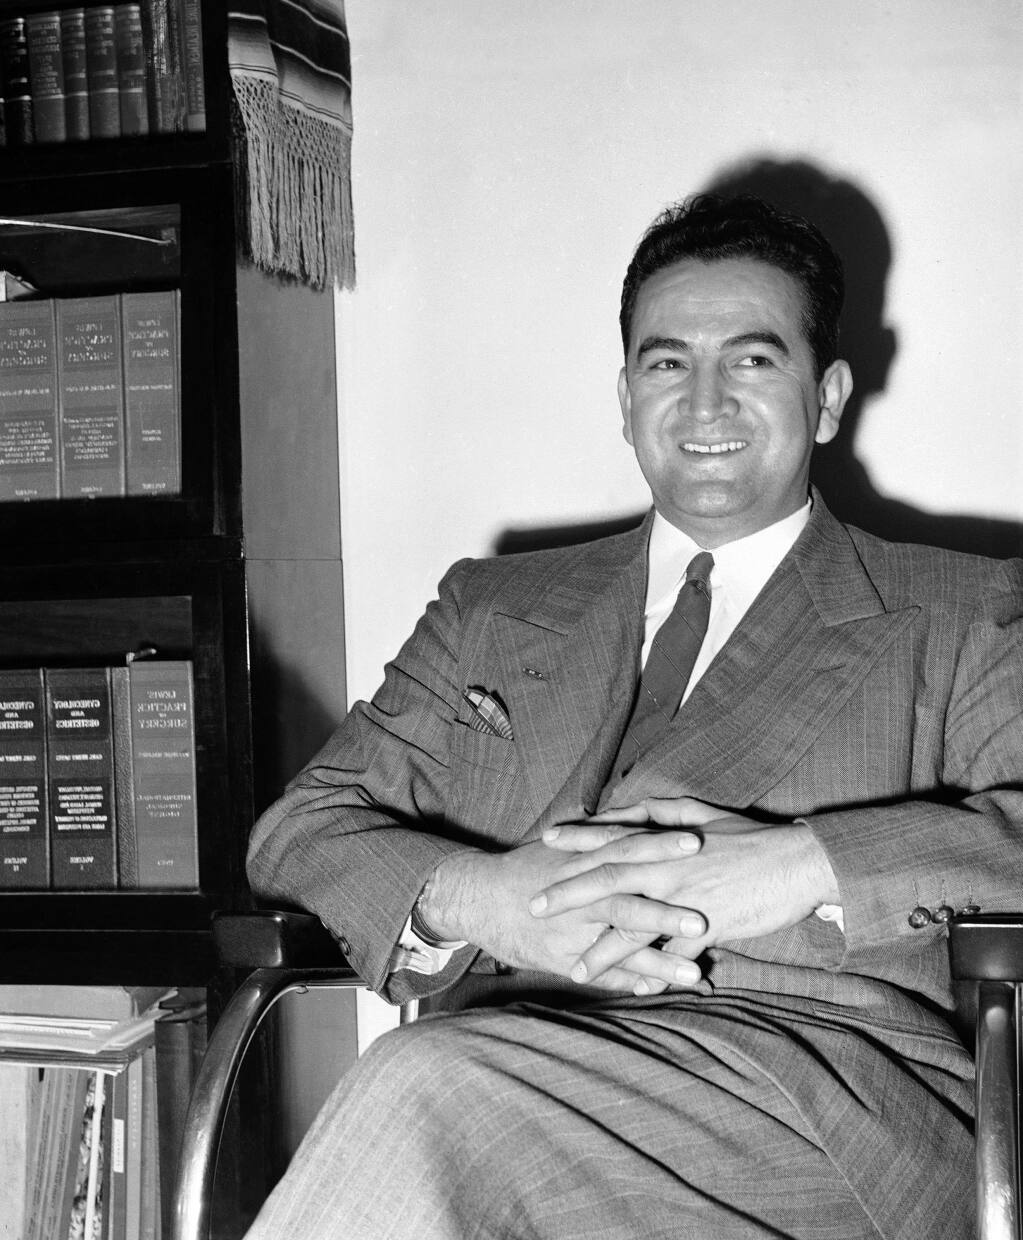 FILE - This May 2, 1949, file photo shows physician and surgeon Dr. Hector Perez Garcia, whose goal was to fight for a better deal for U.S. Latin American citizens, in Corpus Christi, Texas. The office of 4, where the Mexican American civil rights movement was sparked, is gone and is an example that many Latino historical preservation advocates say shows more needs to be done to save sites linked to Latino history. (AP Photo/File)